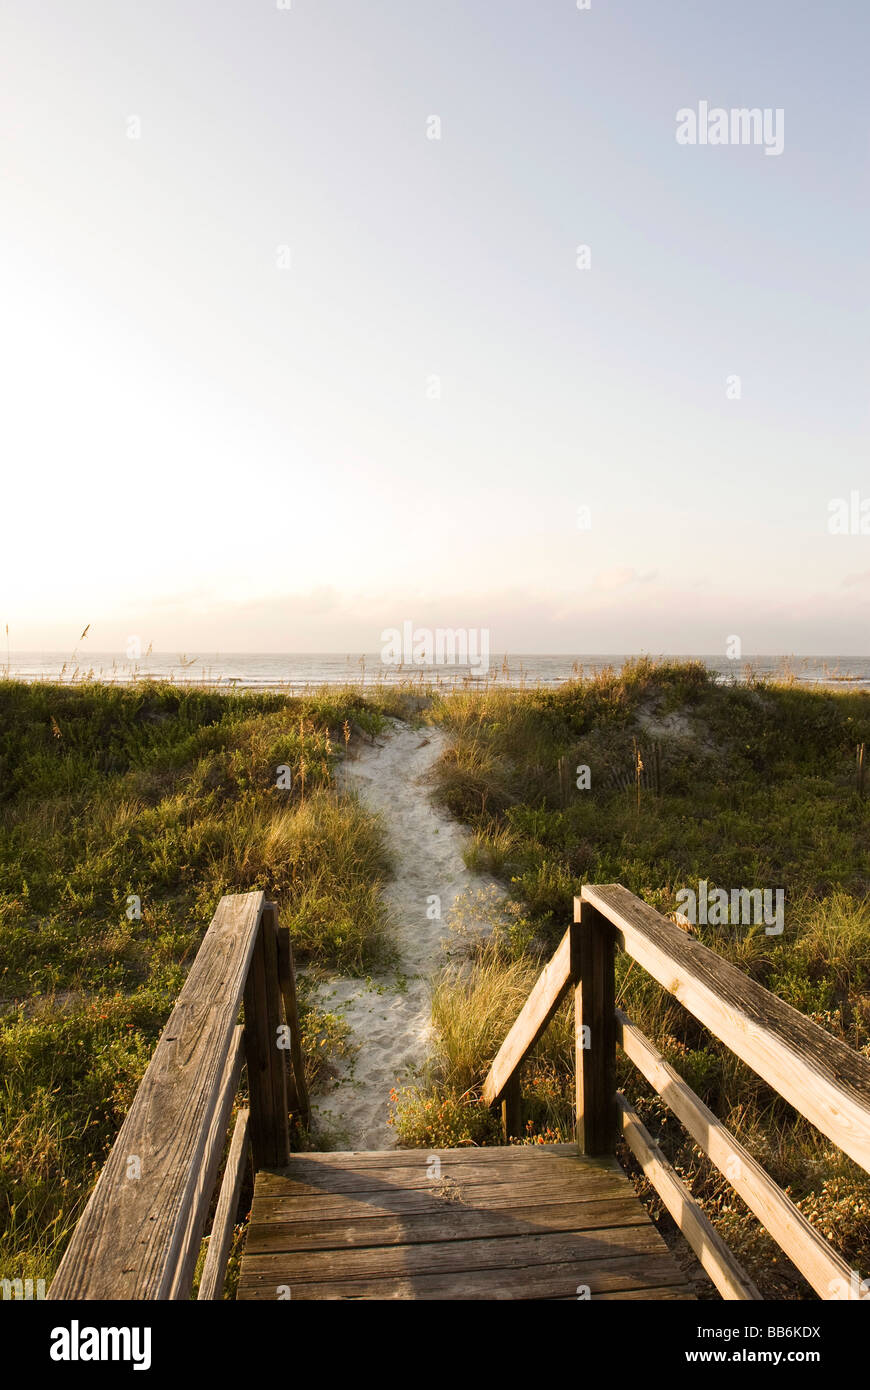 boardwalk leading to beach - Stock Image